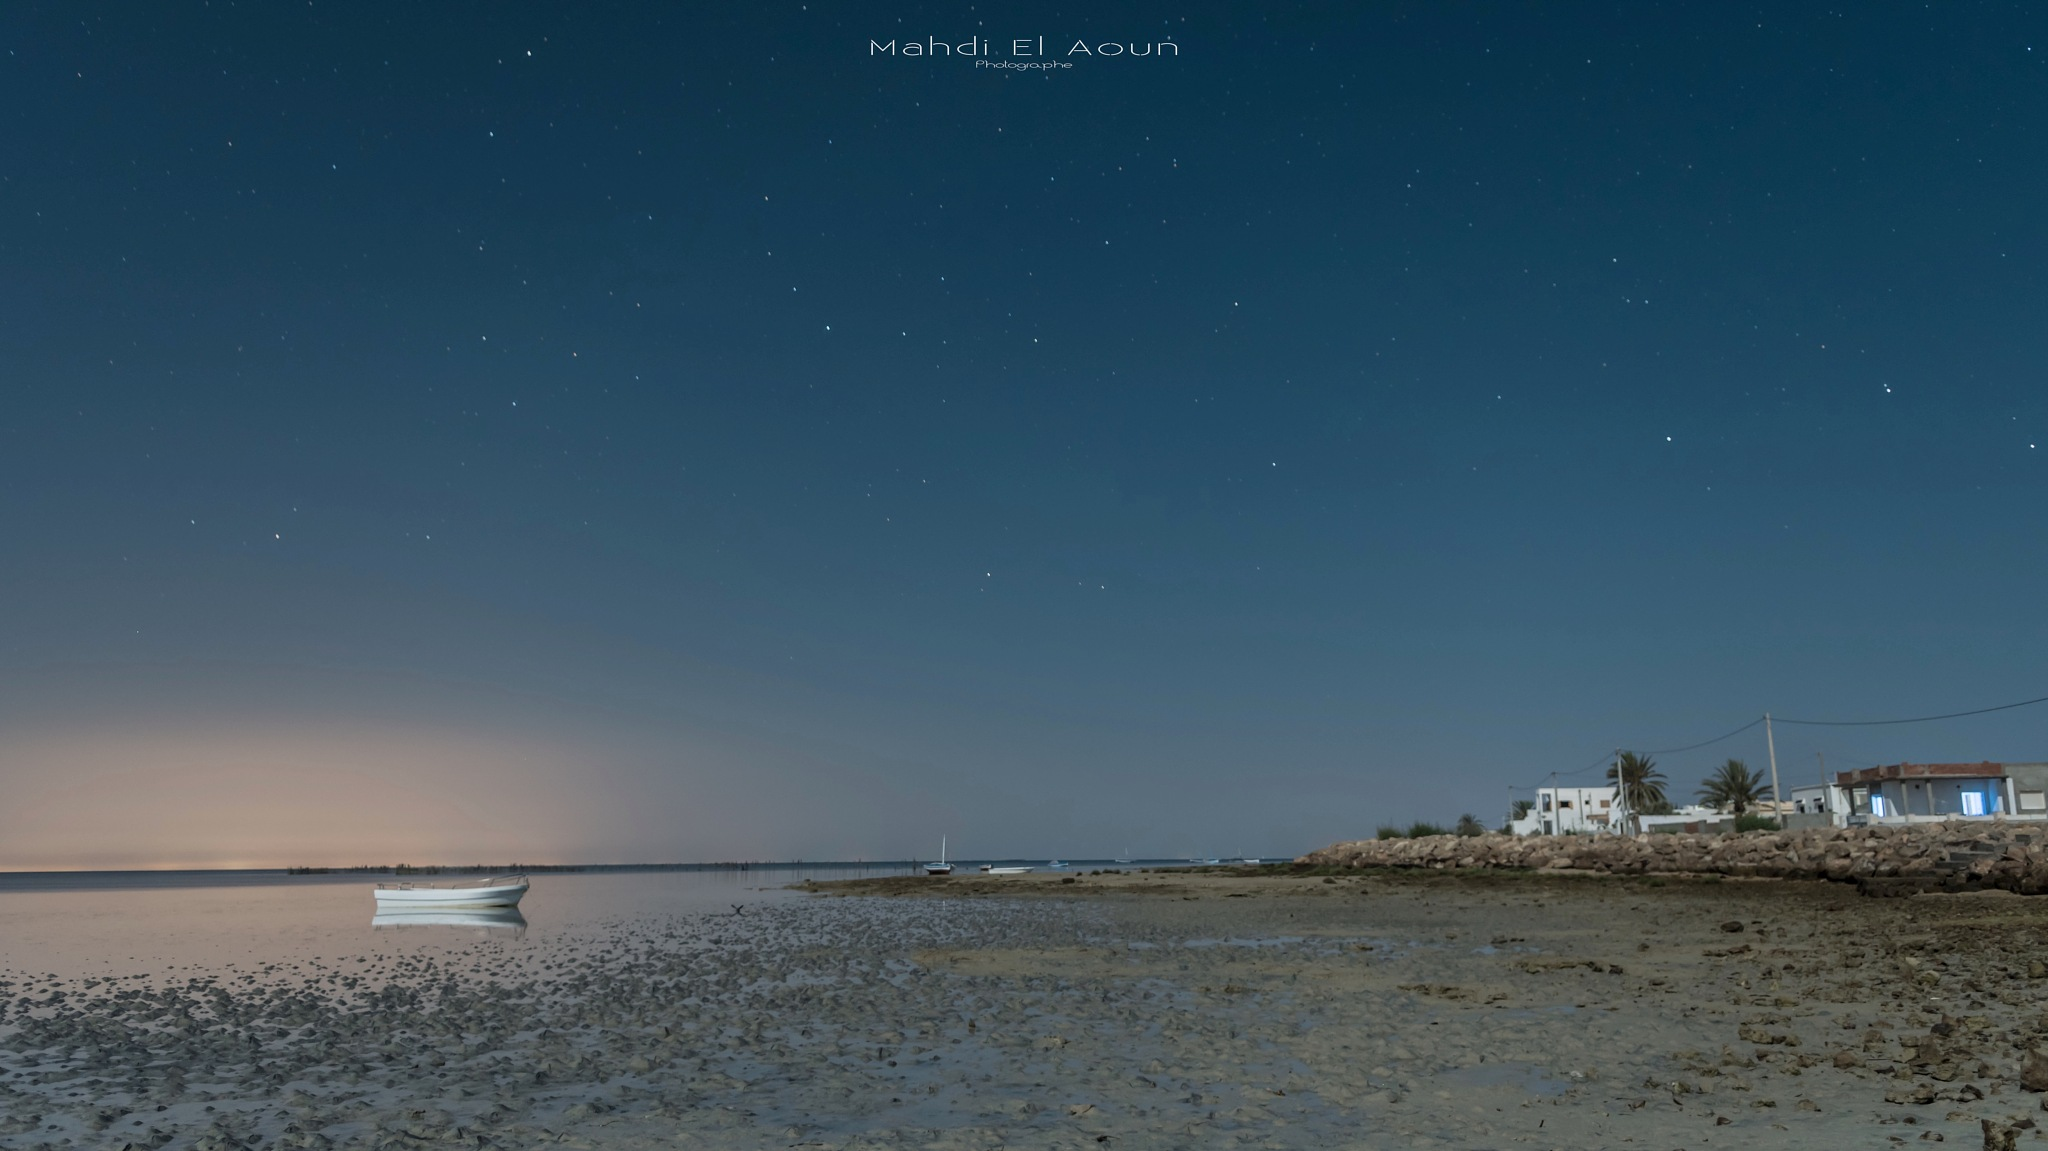 Lonely   by Mahdi El Aoun